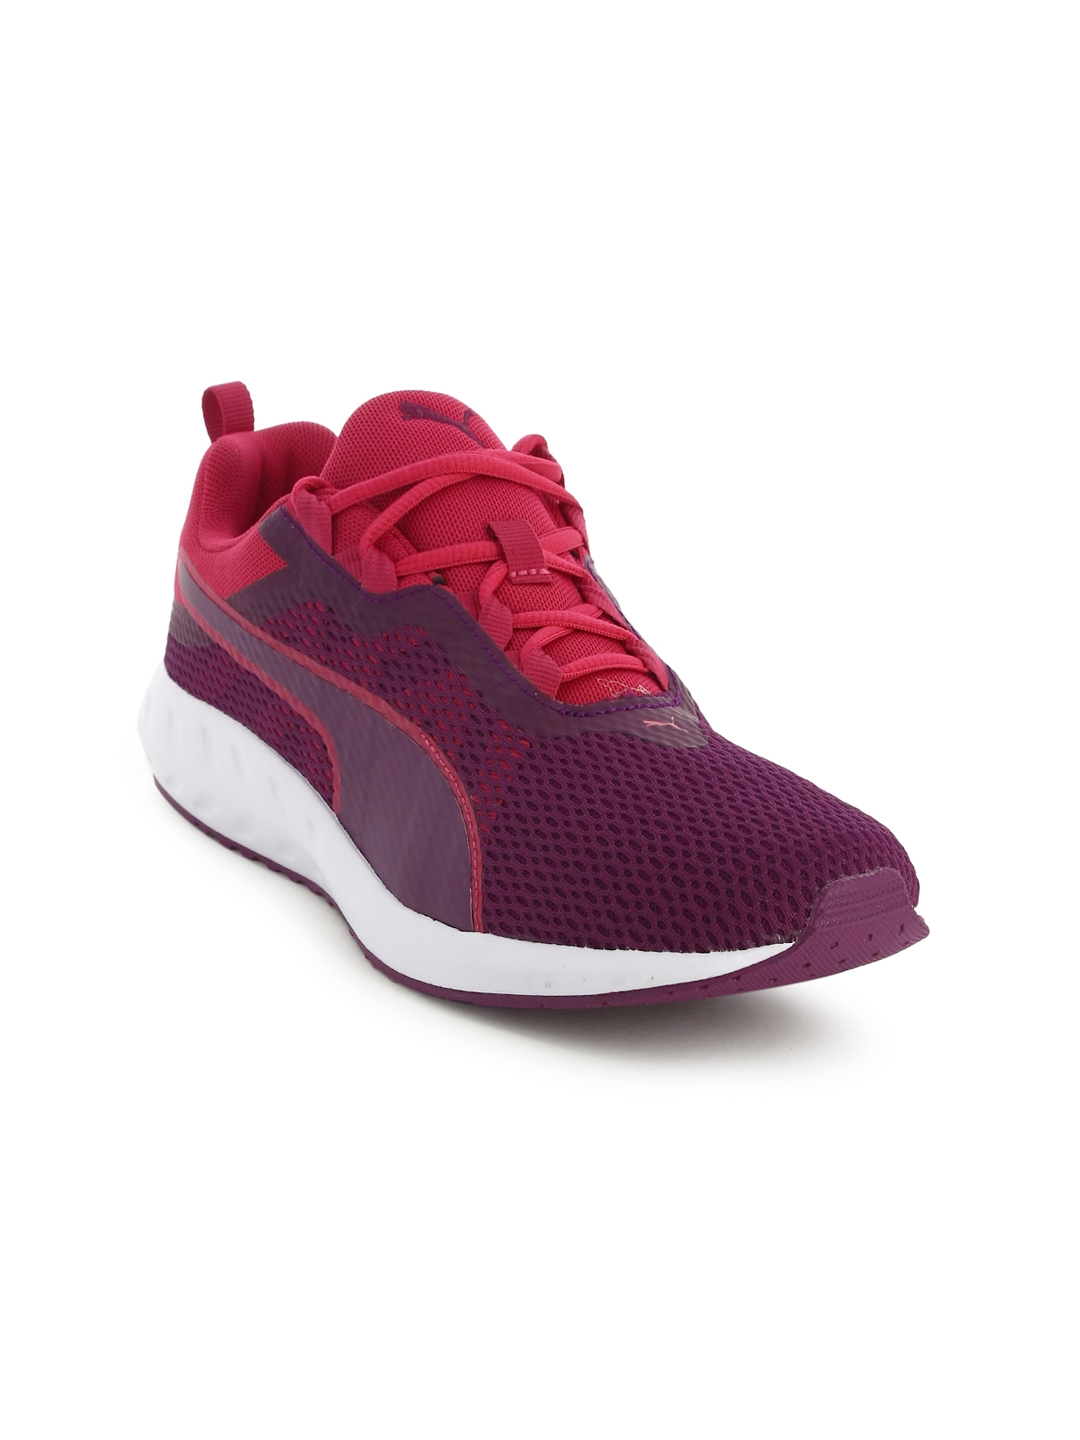 2deb3db5a026 Buy Puma Women Purple Flare 2 Running Shoes - Sports Shoes for Women ...